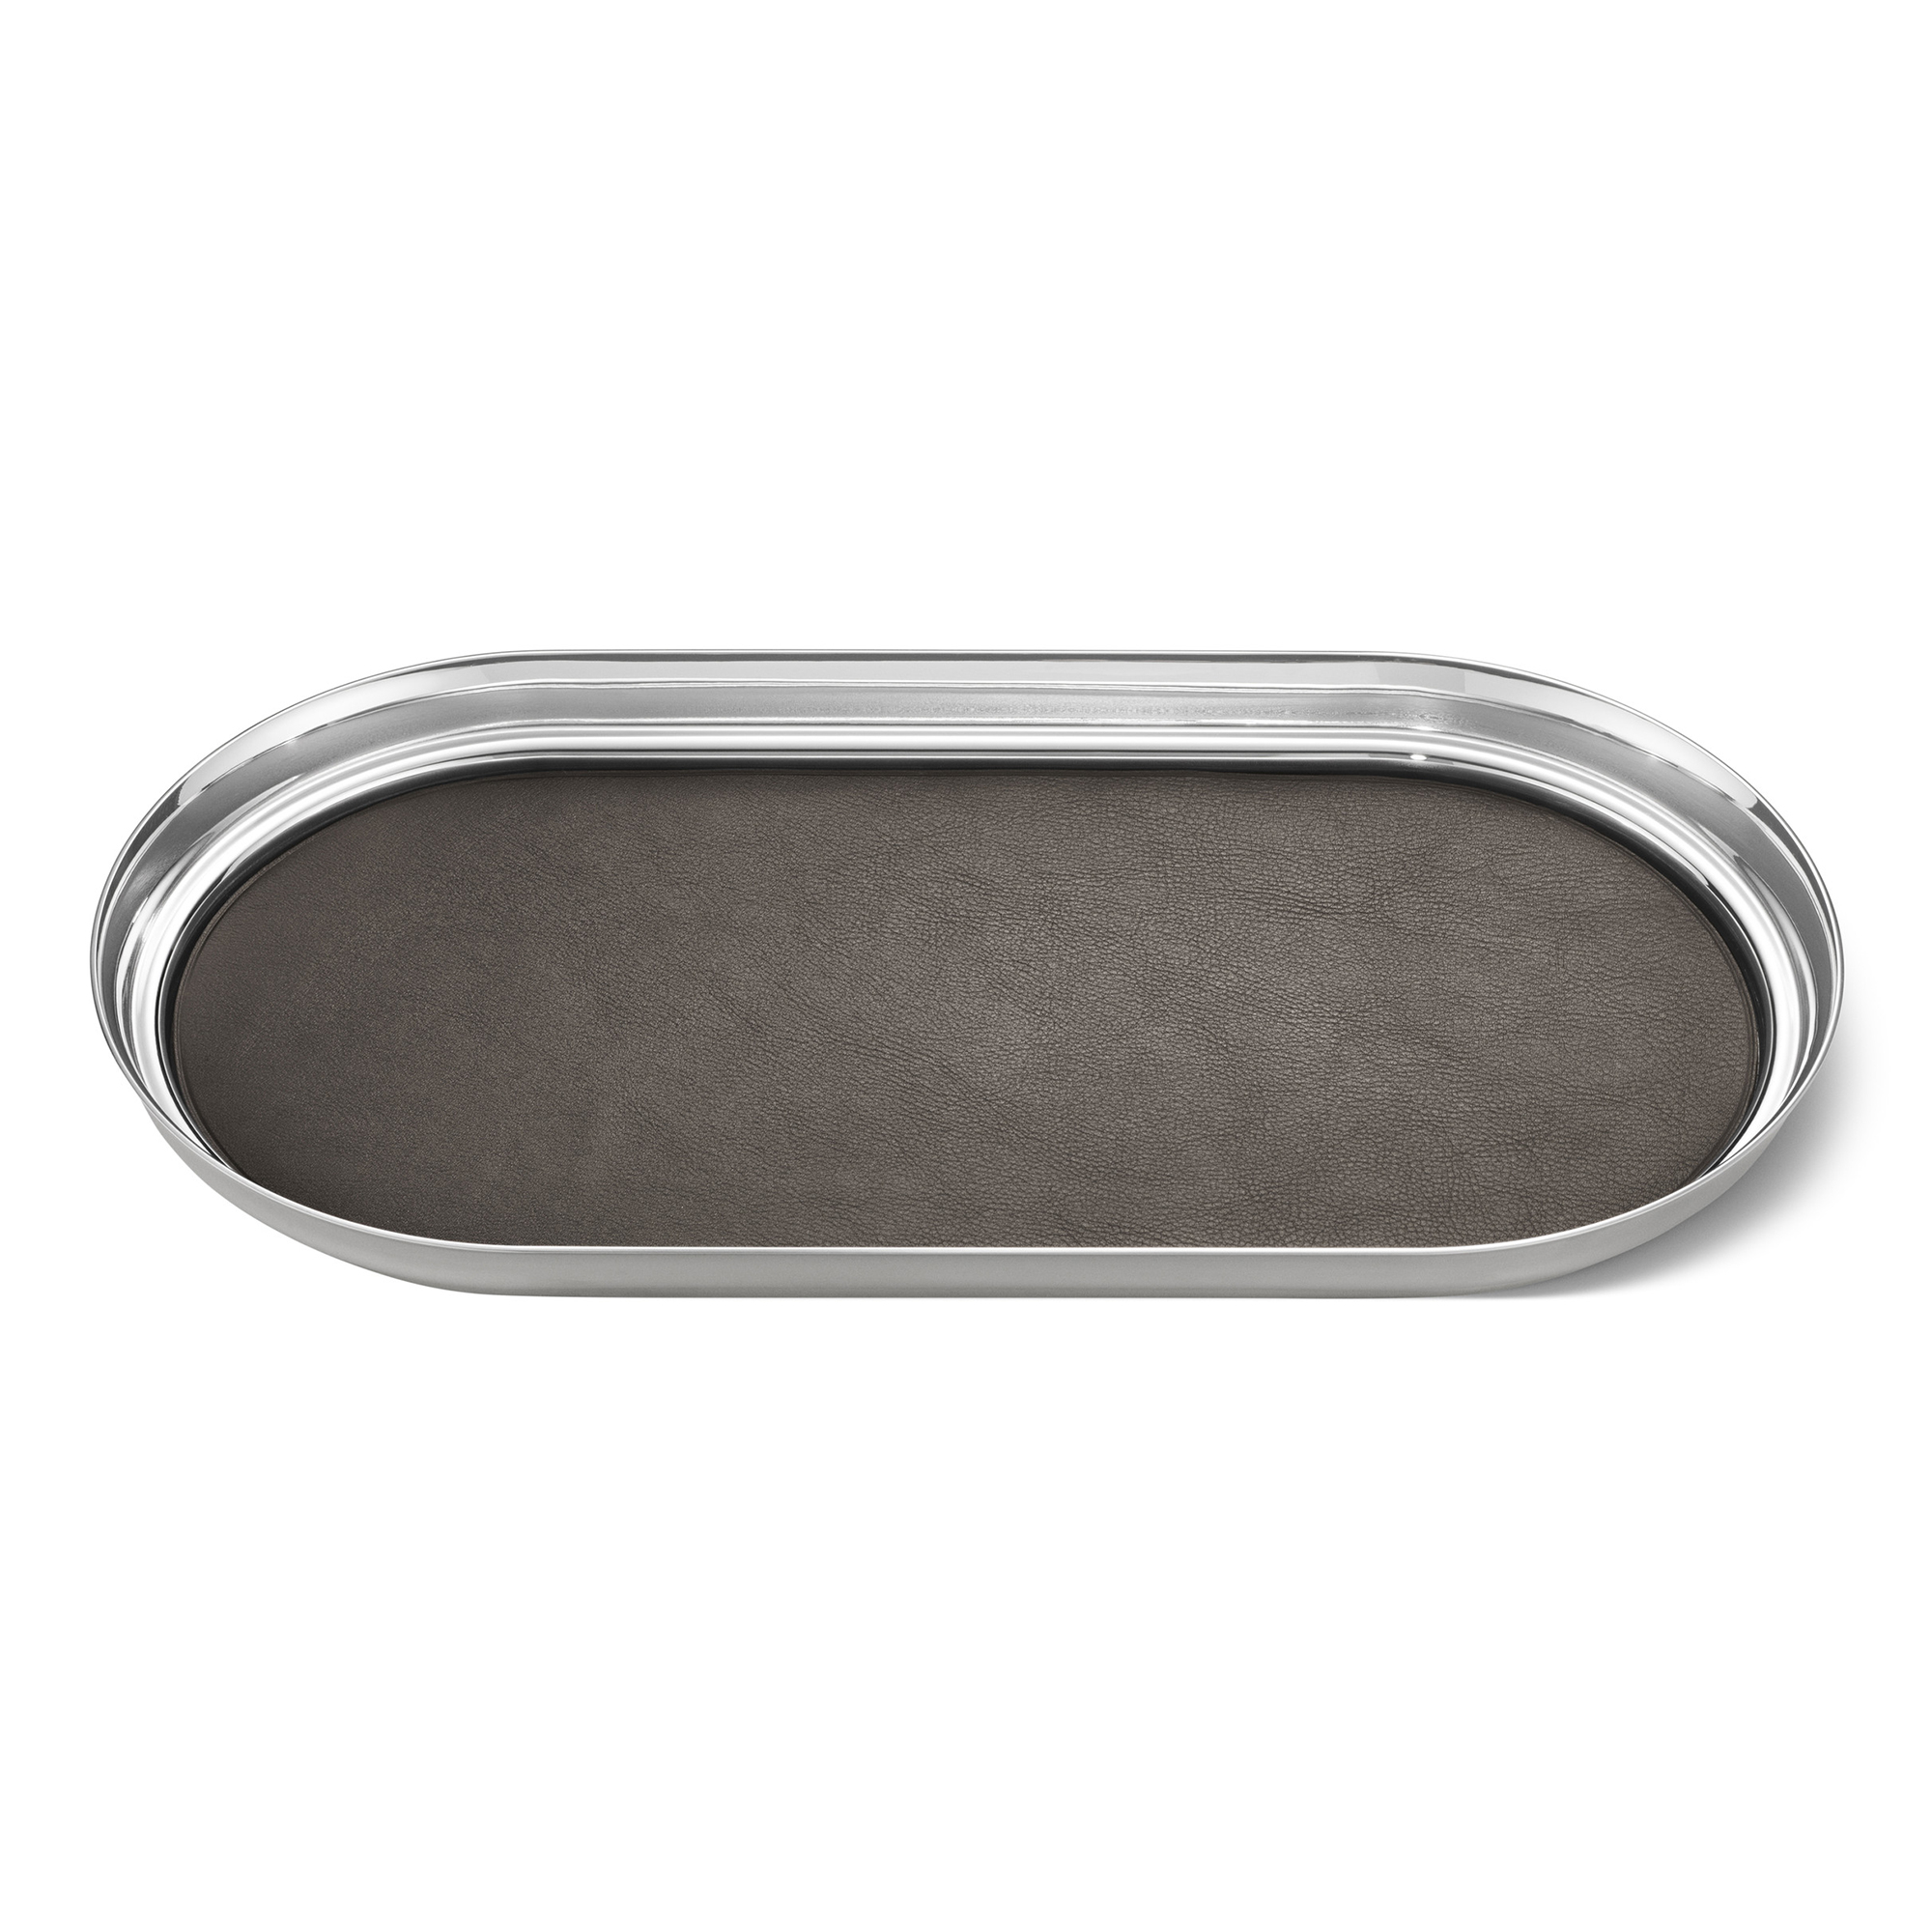 Georg Jensen Manhattan Tray